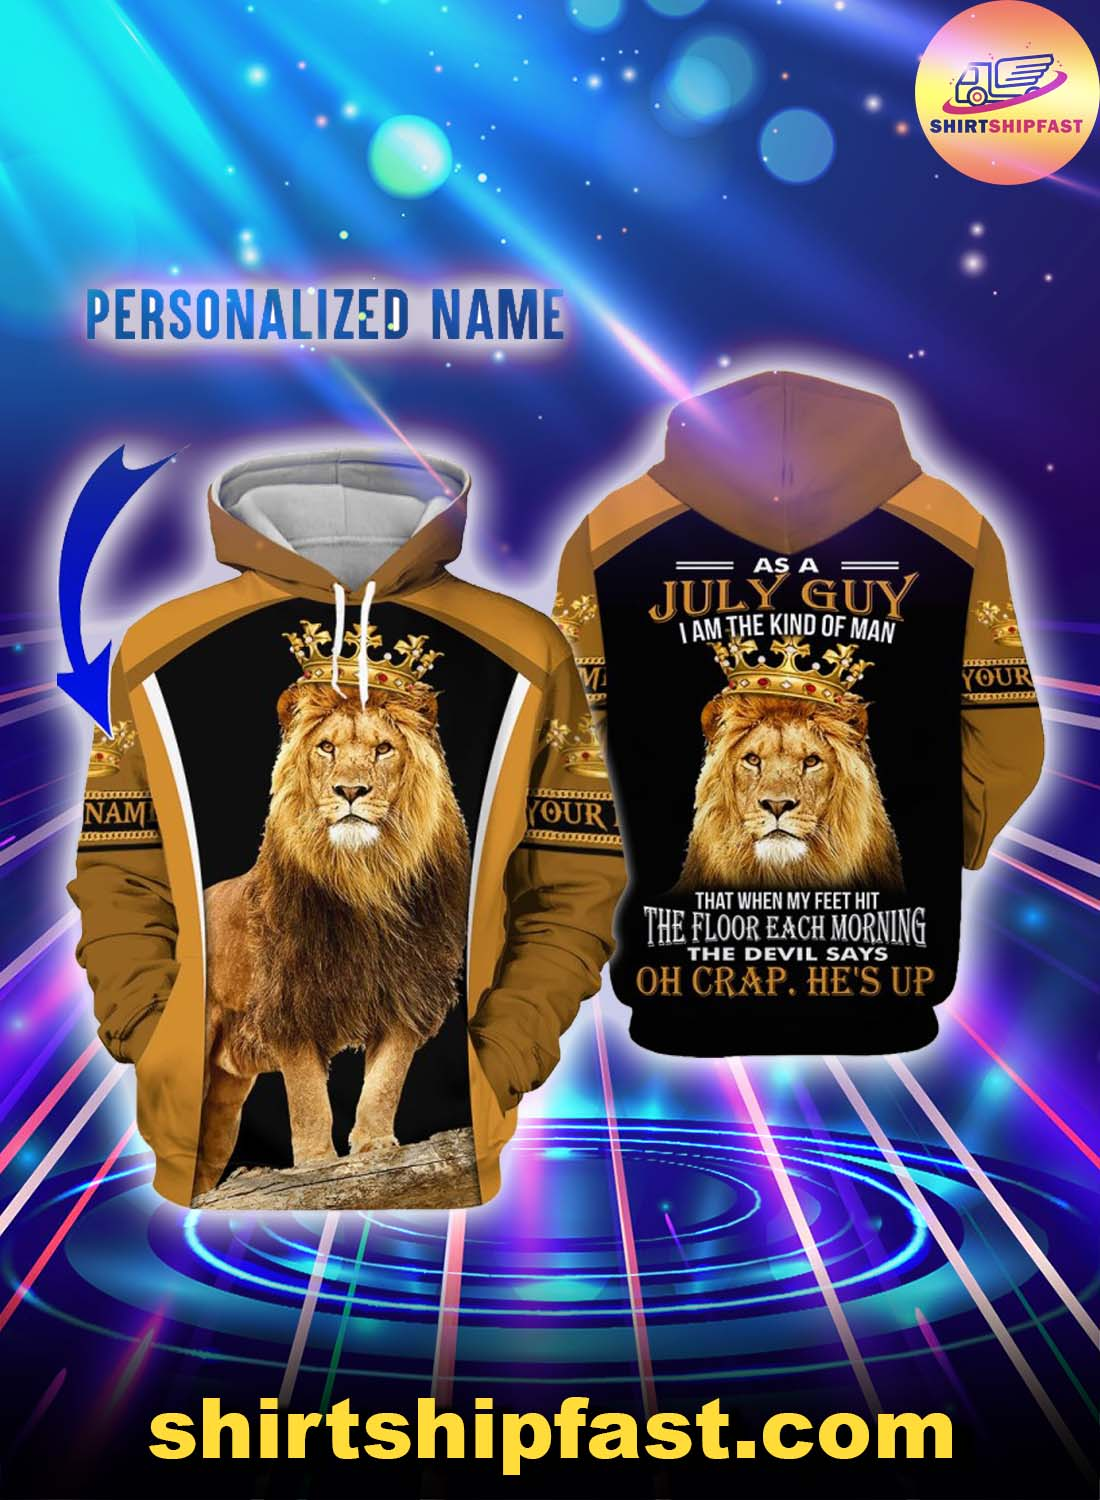 Personalized name July guy all over printed hoodie